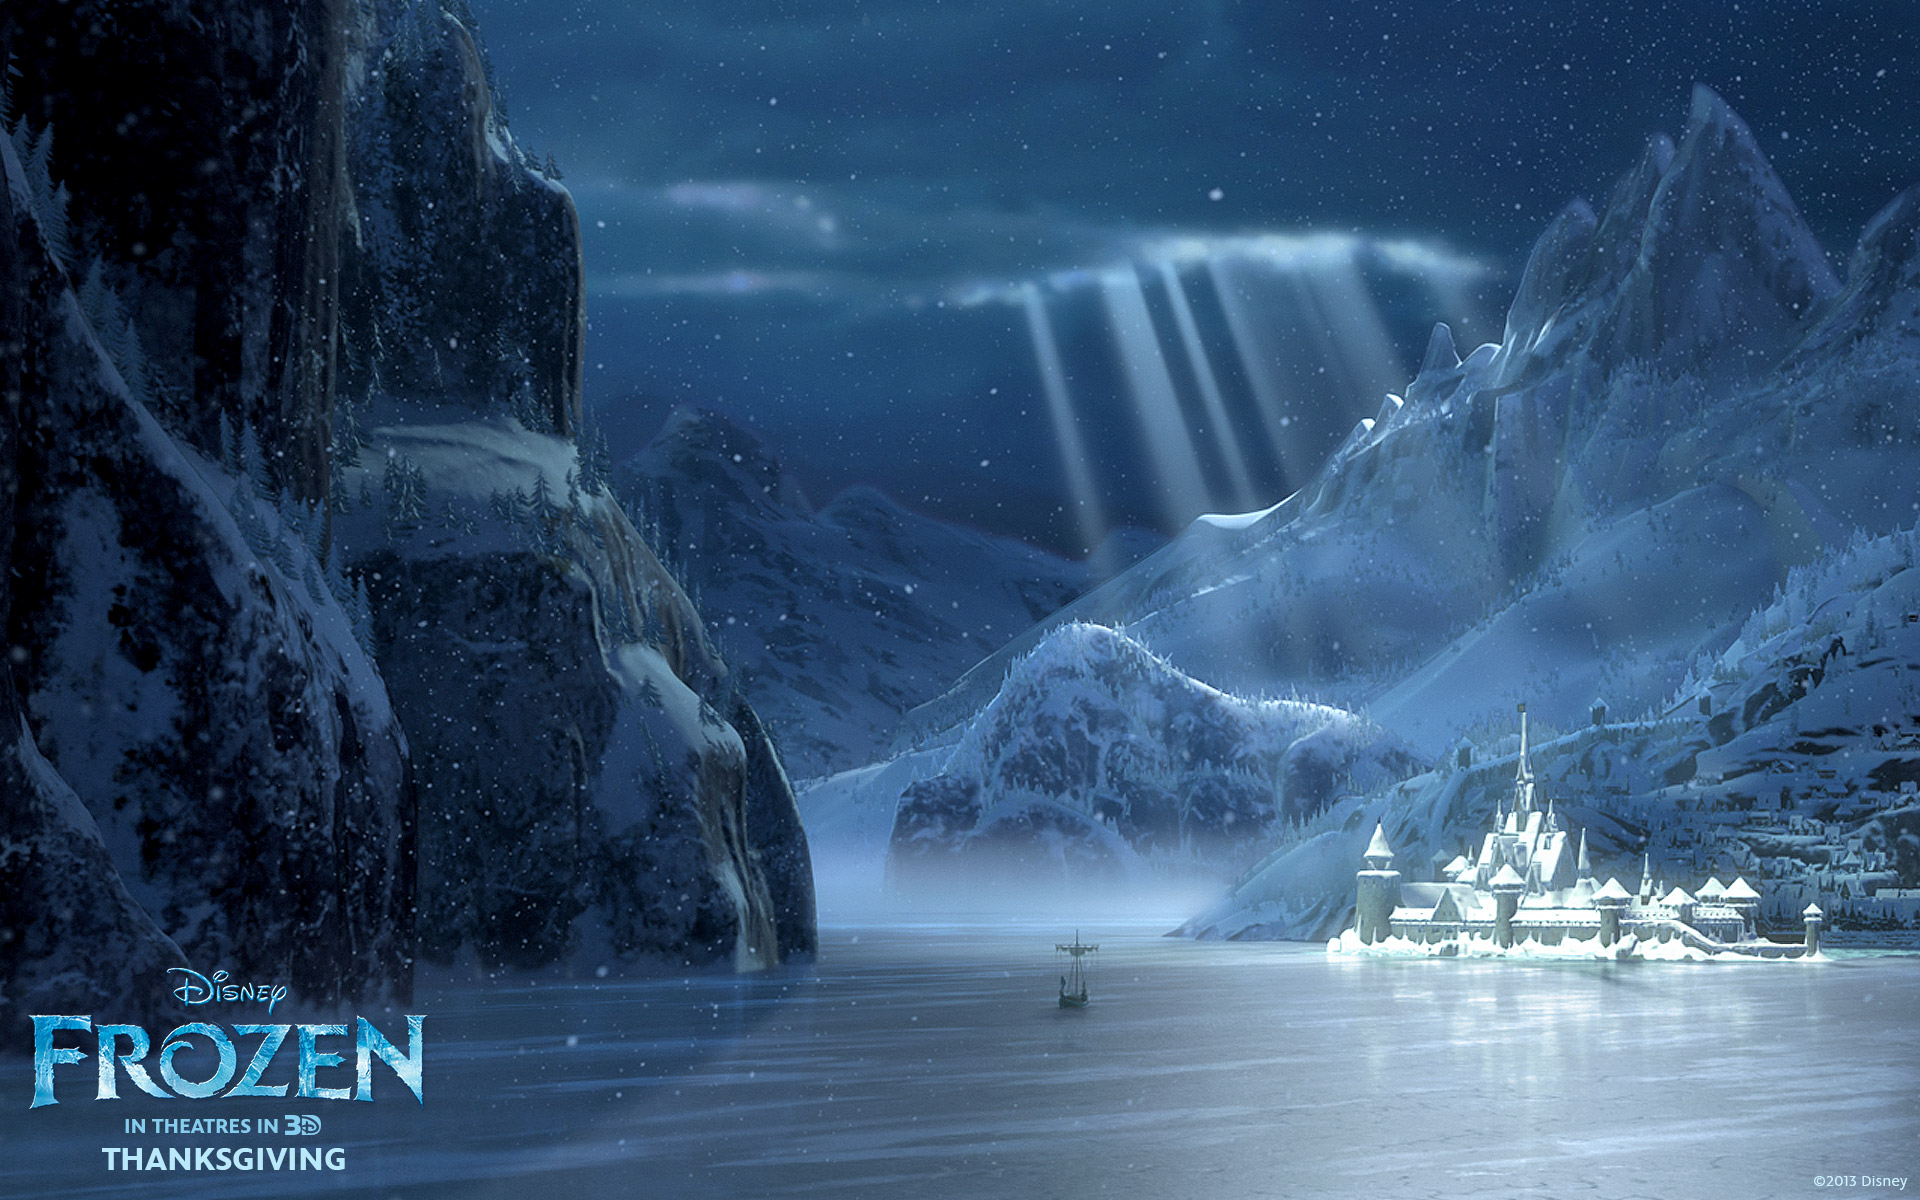 Disneys Frozen CG animated movie wallpaper image background picture 1920x1200